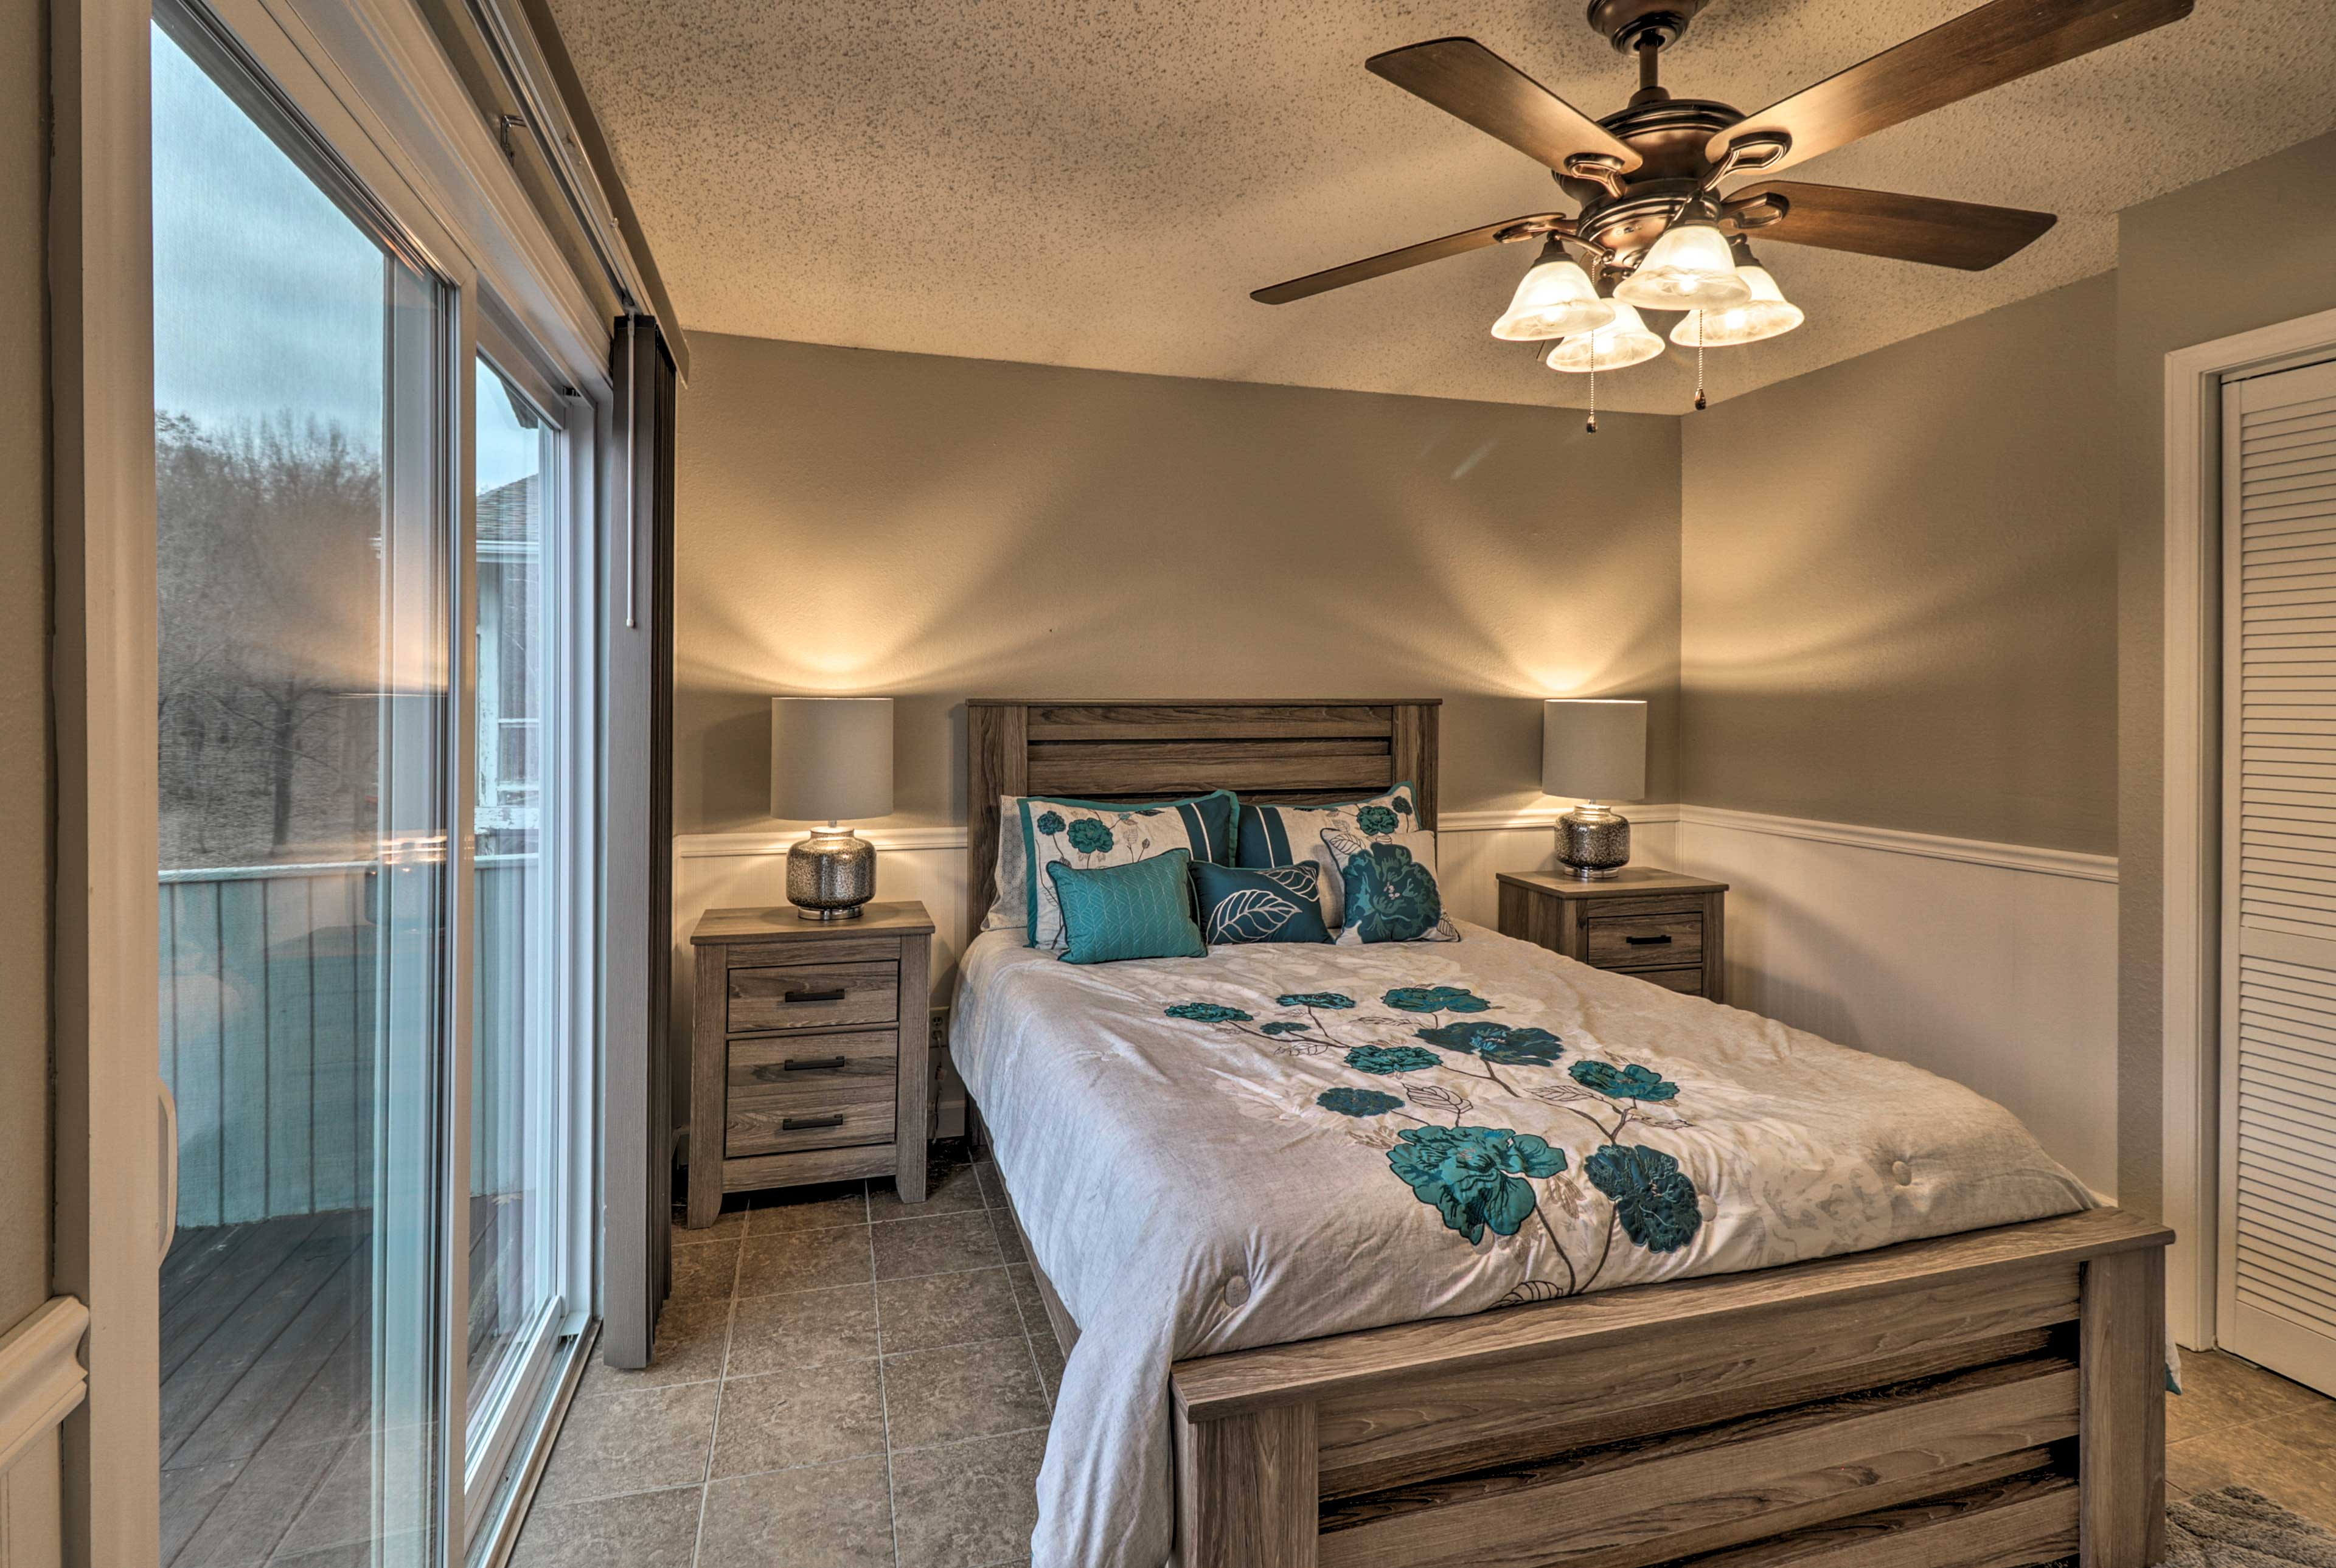 Turn on the ceiling fan & drift to sleep easily in this queen-sized bed.